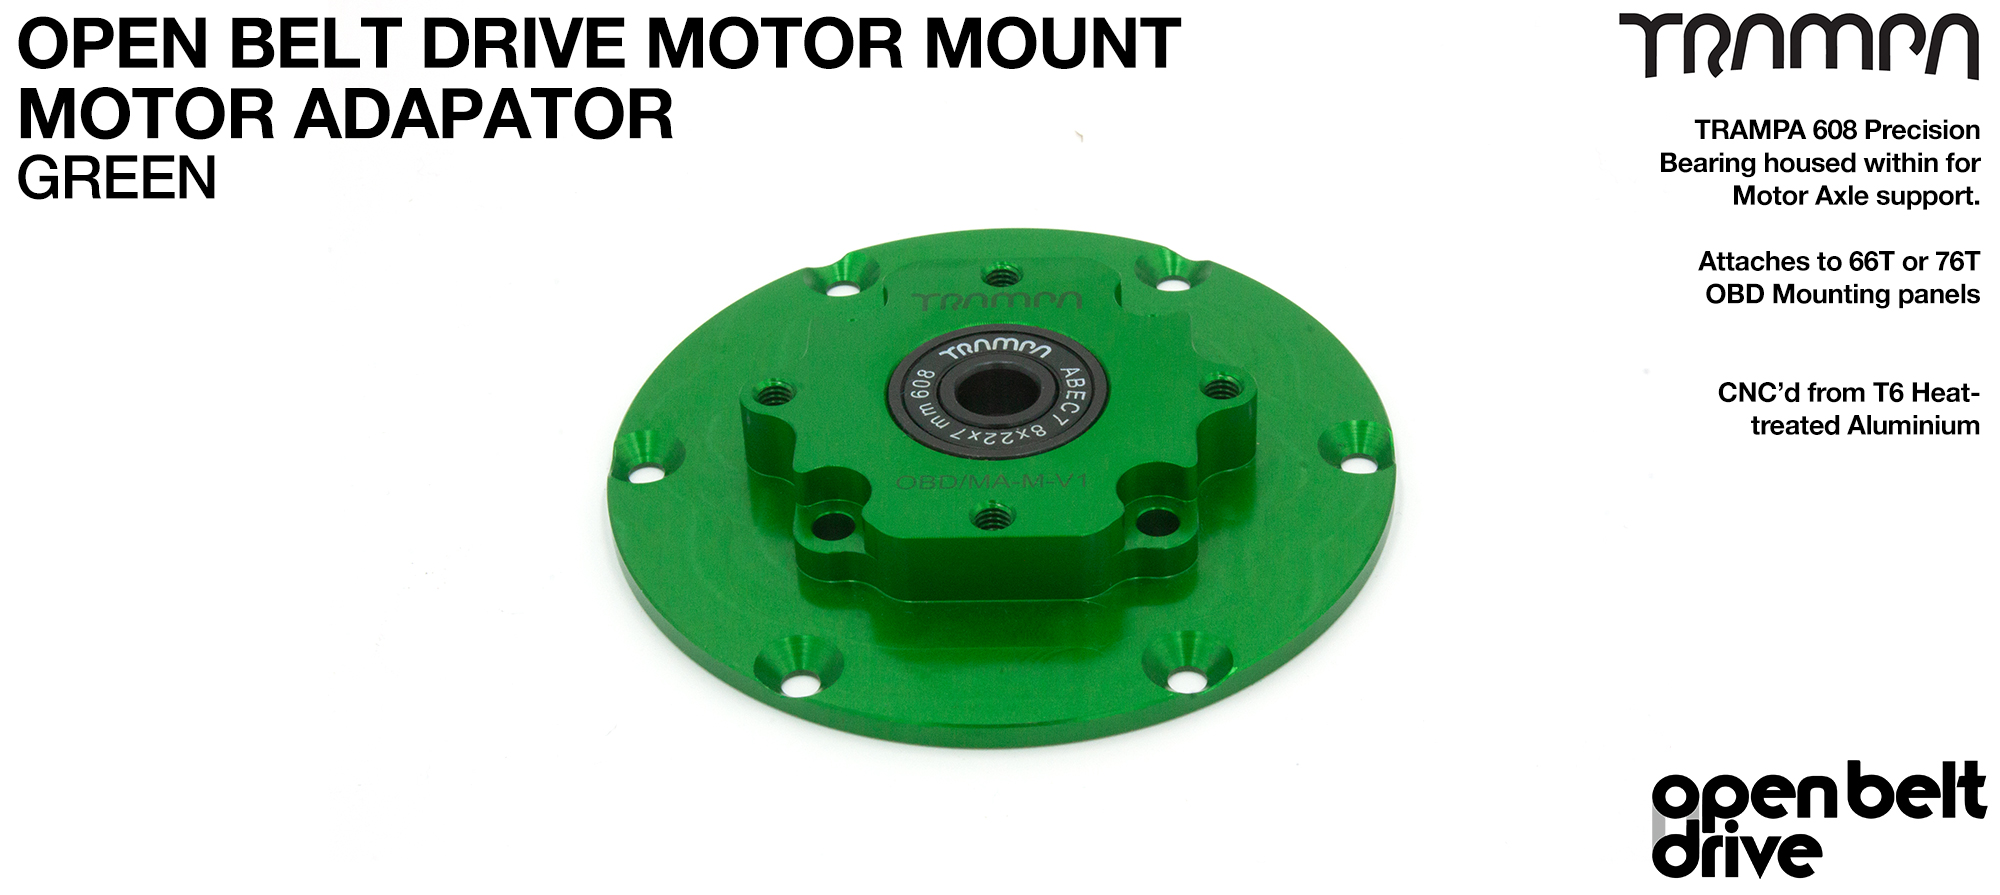 OBD Motor Adaptor with Housed Bearing - GREEN